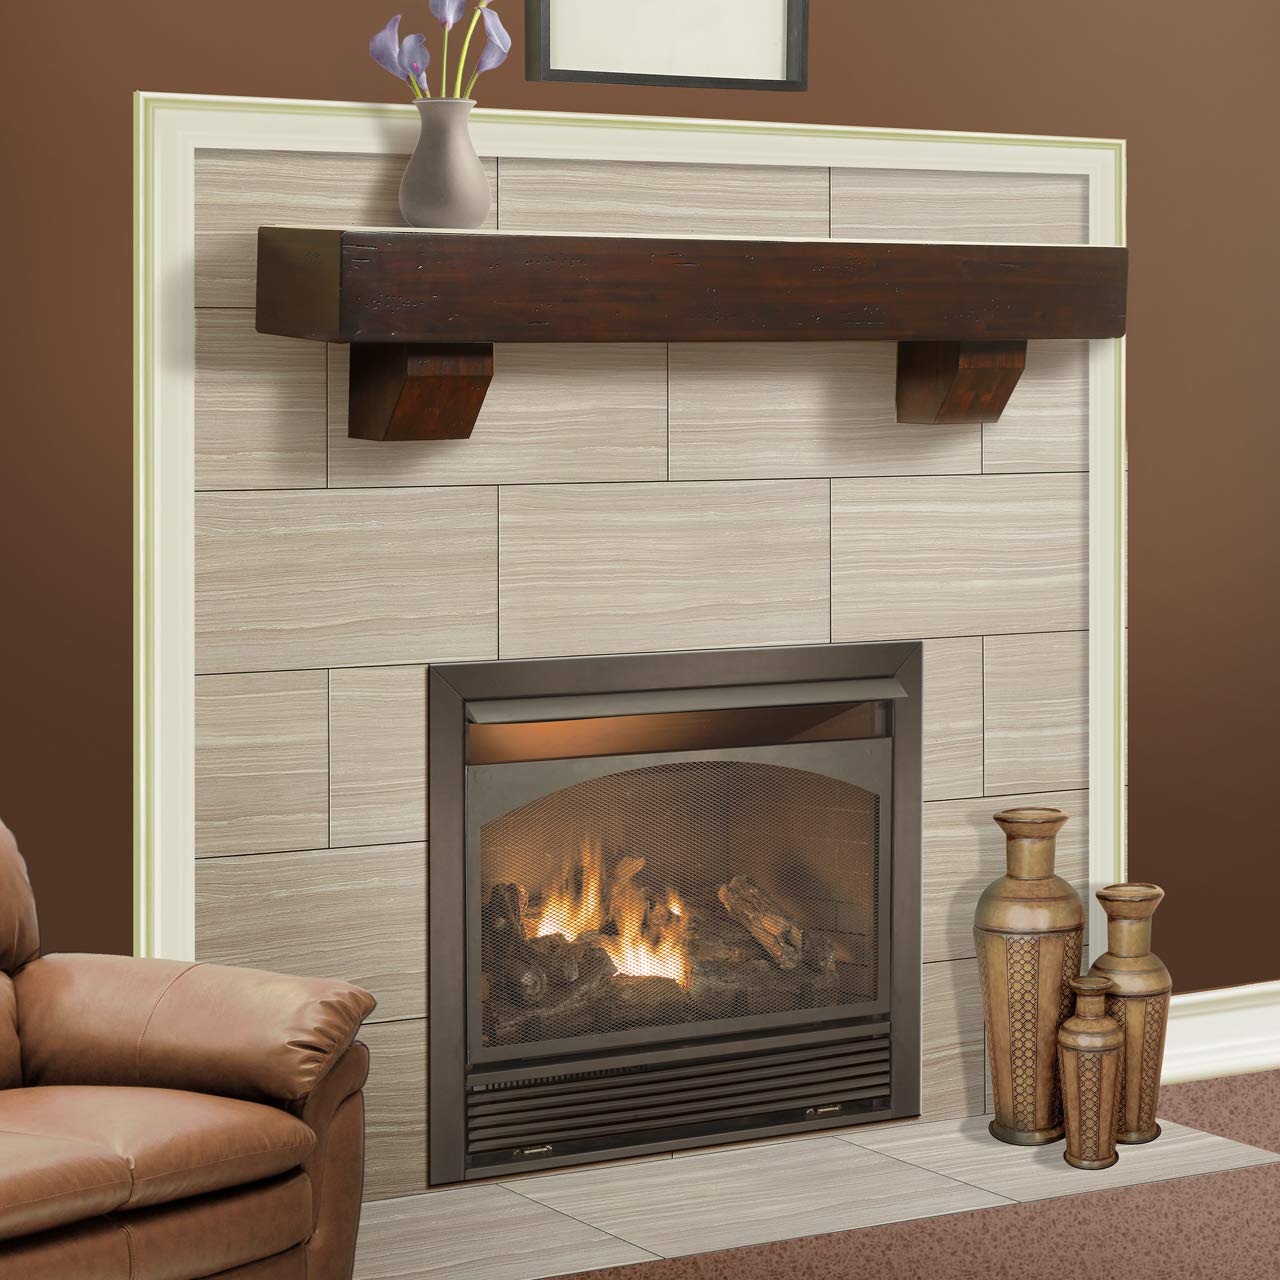 Duluth Forge 60-Inch Shelf Corbels-Chocolate Finish Fireplace Mantel, Large, Brown by Duluth Forge